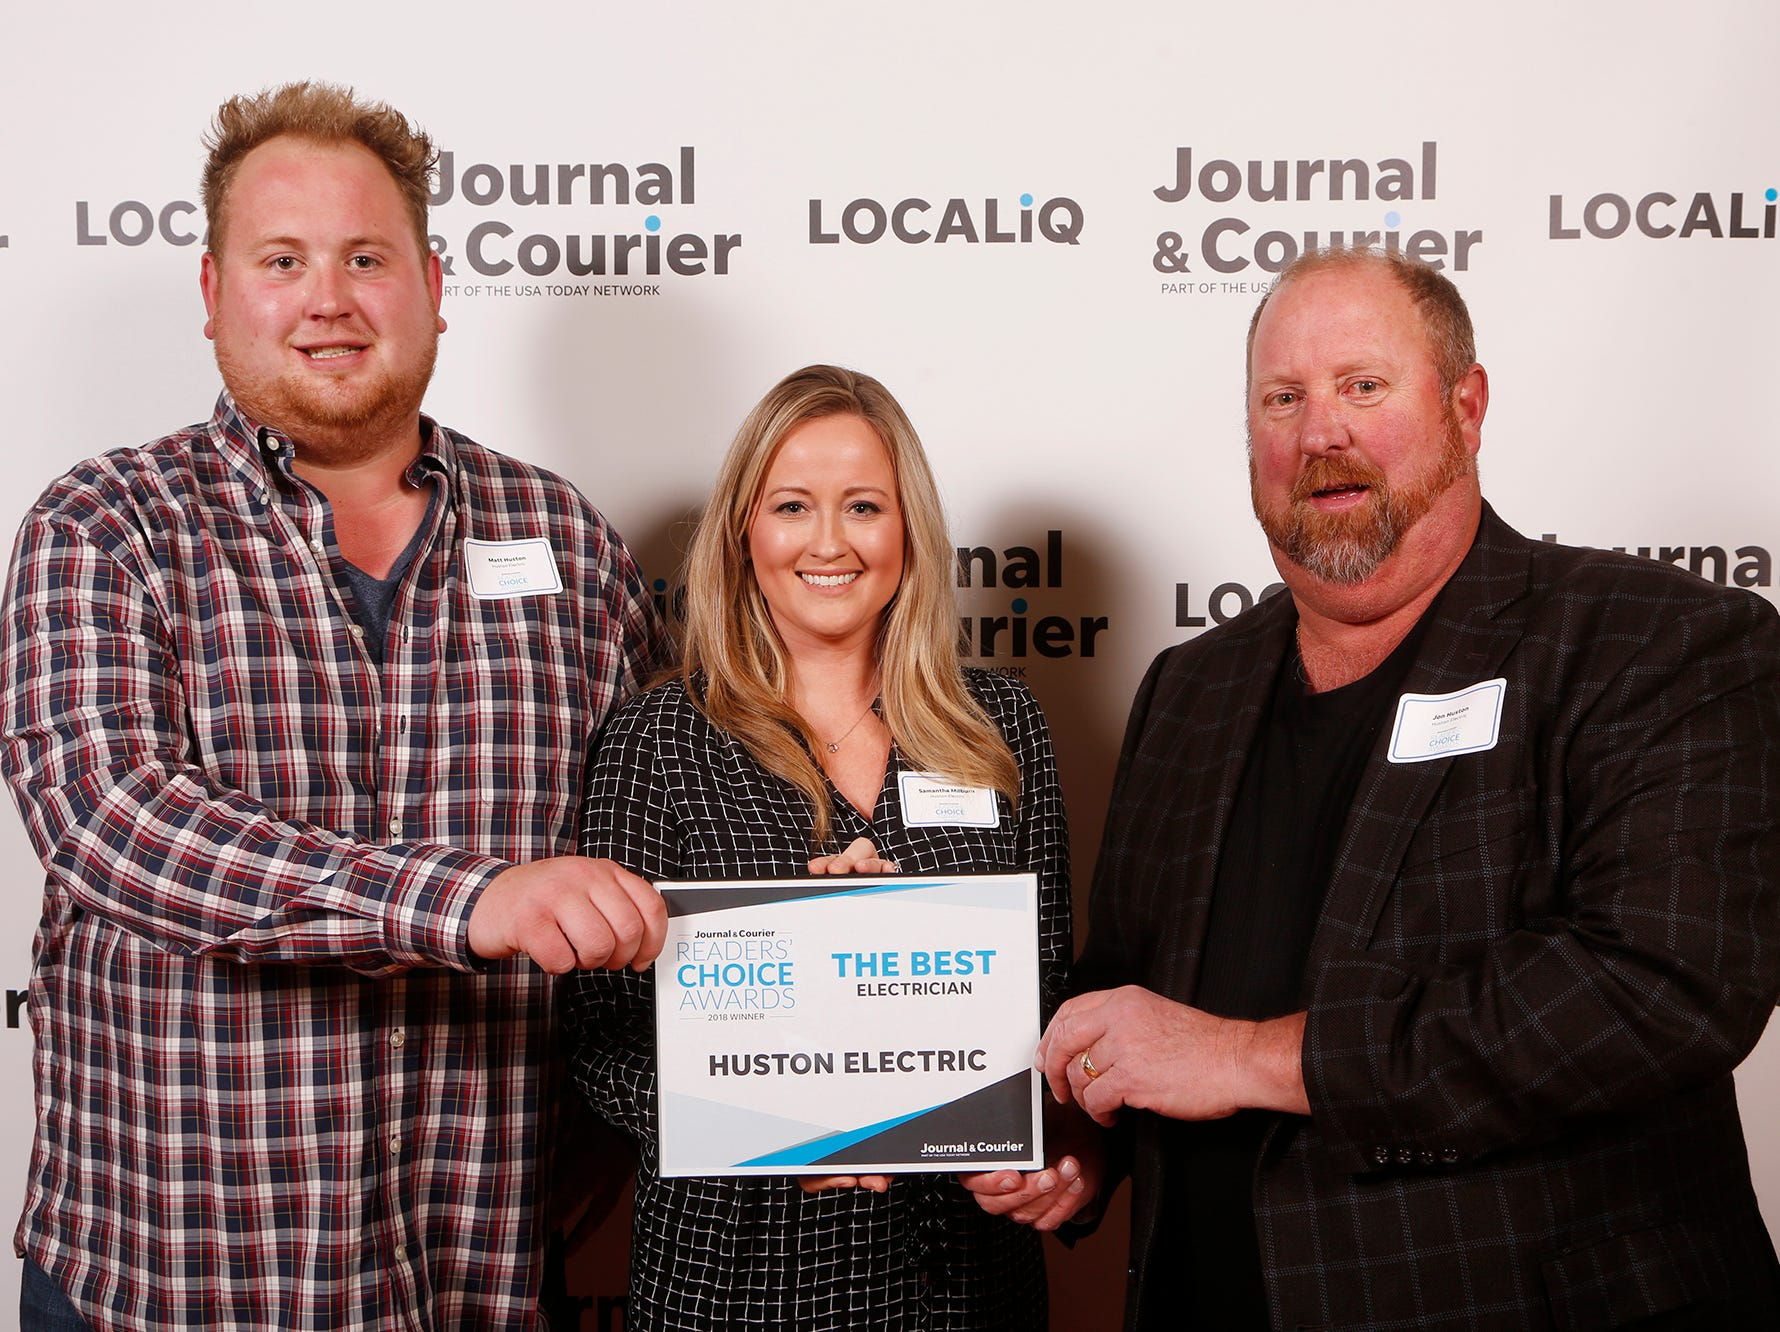 Huston Electric, Journal & Courier Readers' Choice Awards winner for the best electrician.